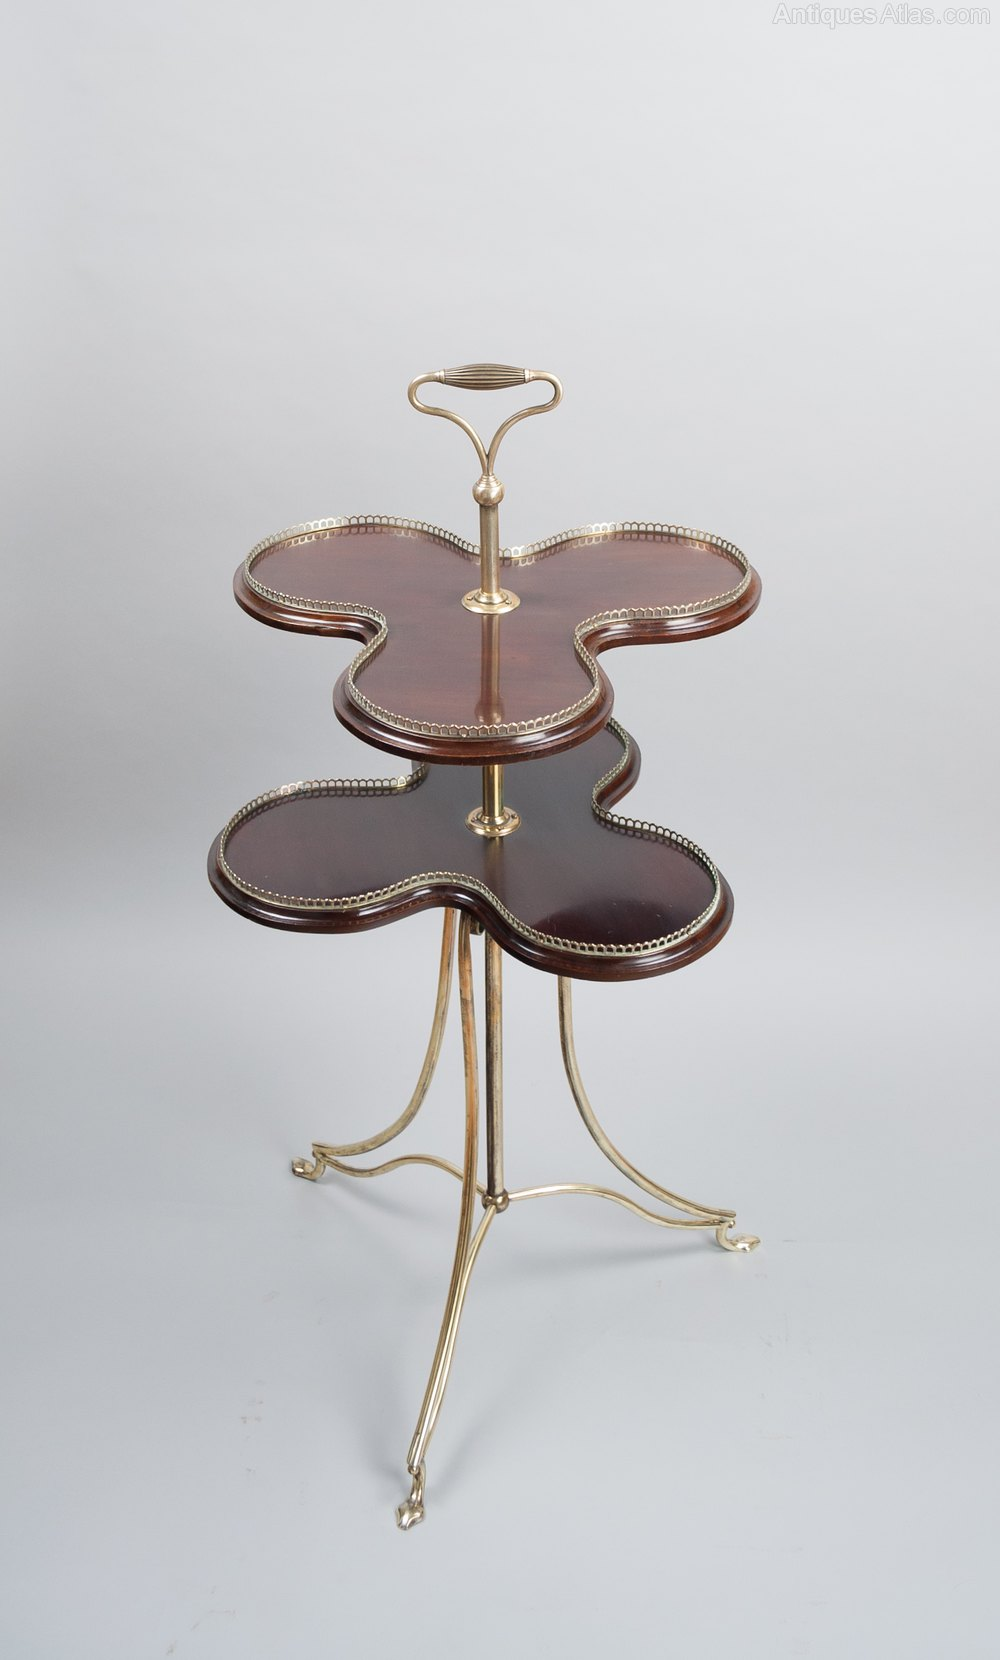 Find great deals on eBay for brass cake stand. Shop with confidence.